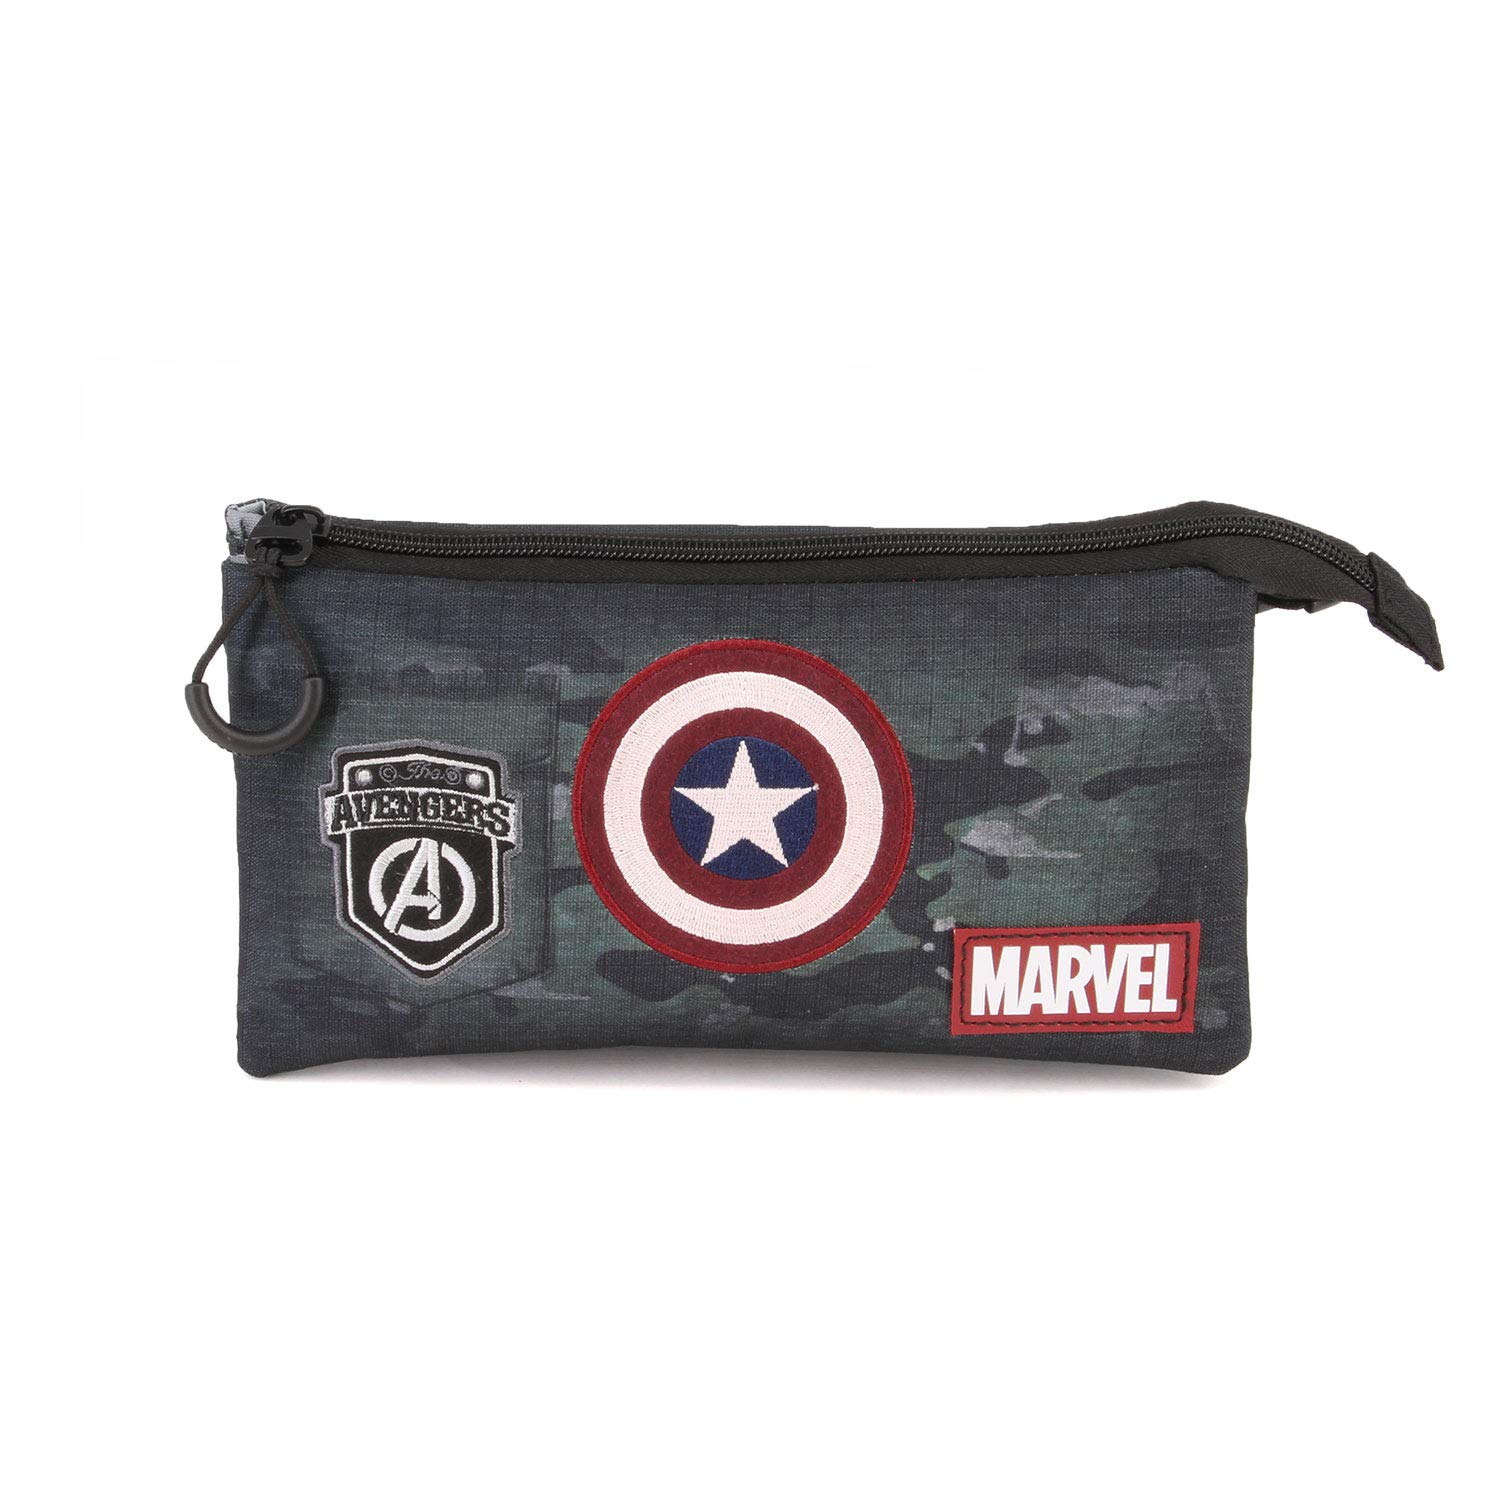 Karactermania Captain America Army-astuccio Portatutto Triplo HS Estuches 24 Centimeters Multicolor (Multicolour)